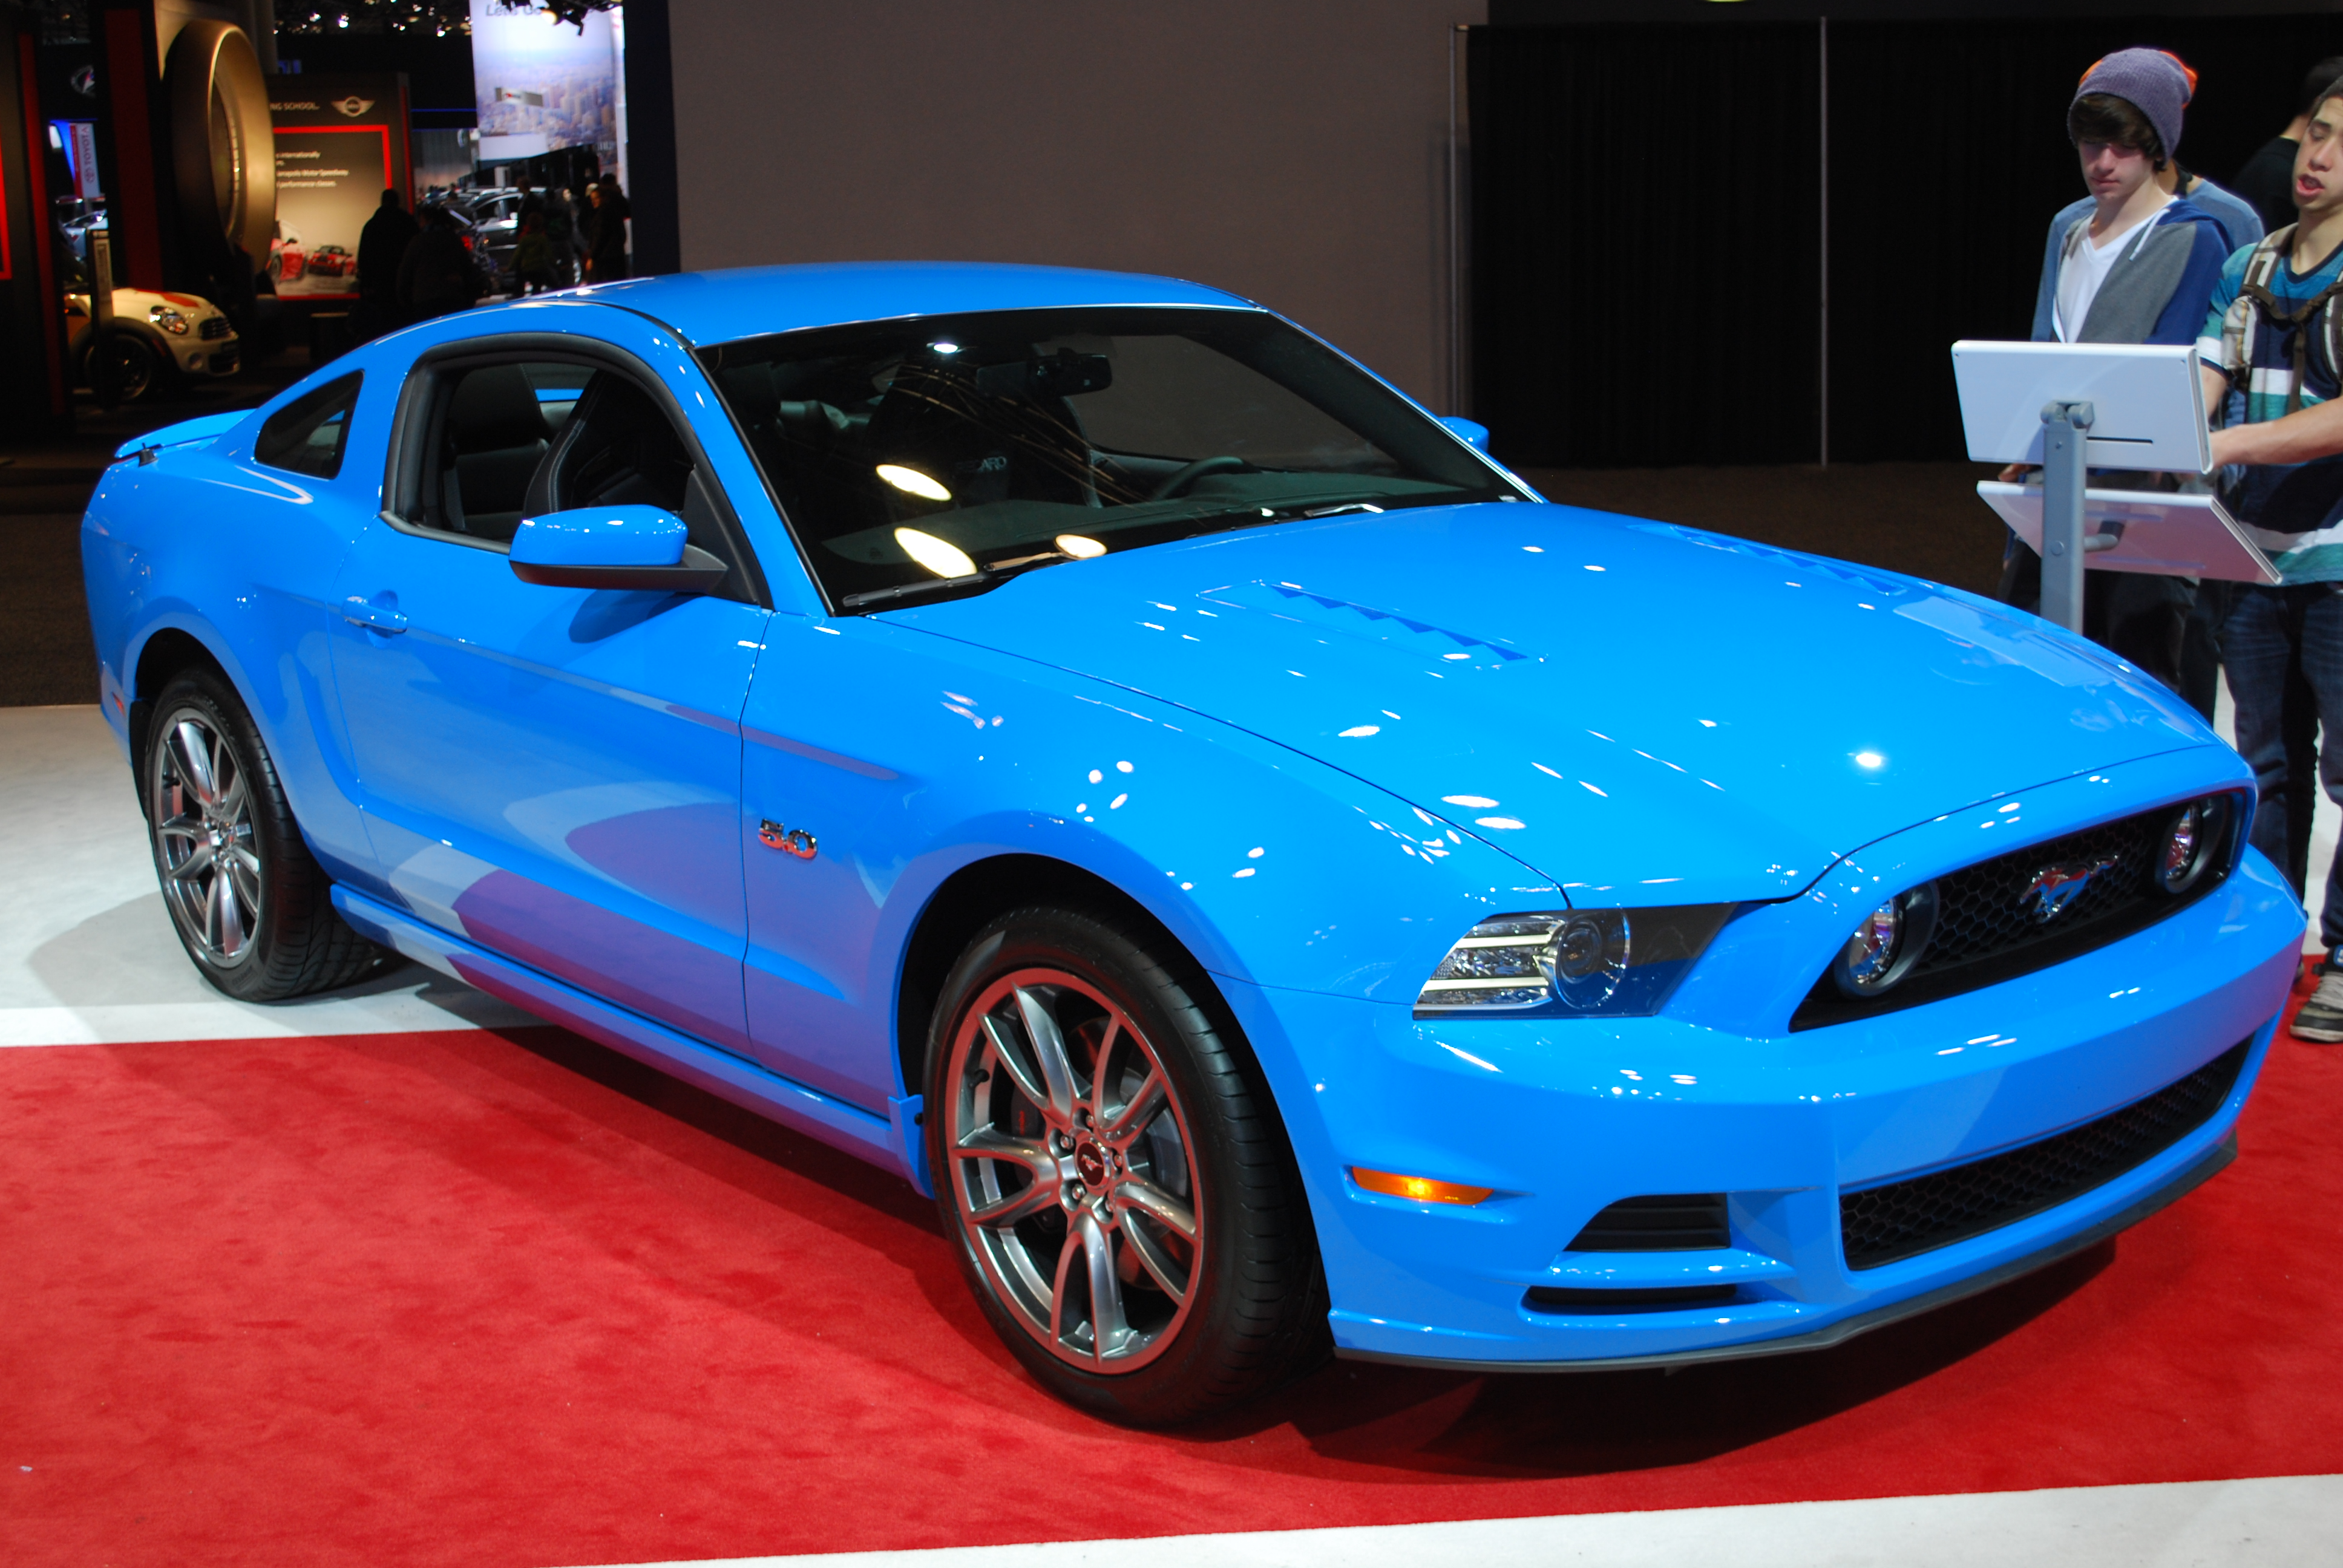 2014 gt mustang 0 60 mph time autos post. Black Bedroom Furniture Sets. Home Design Ideas